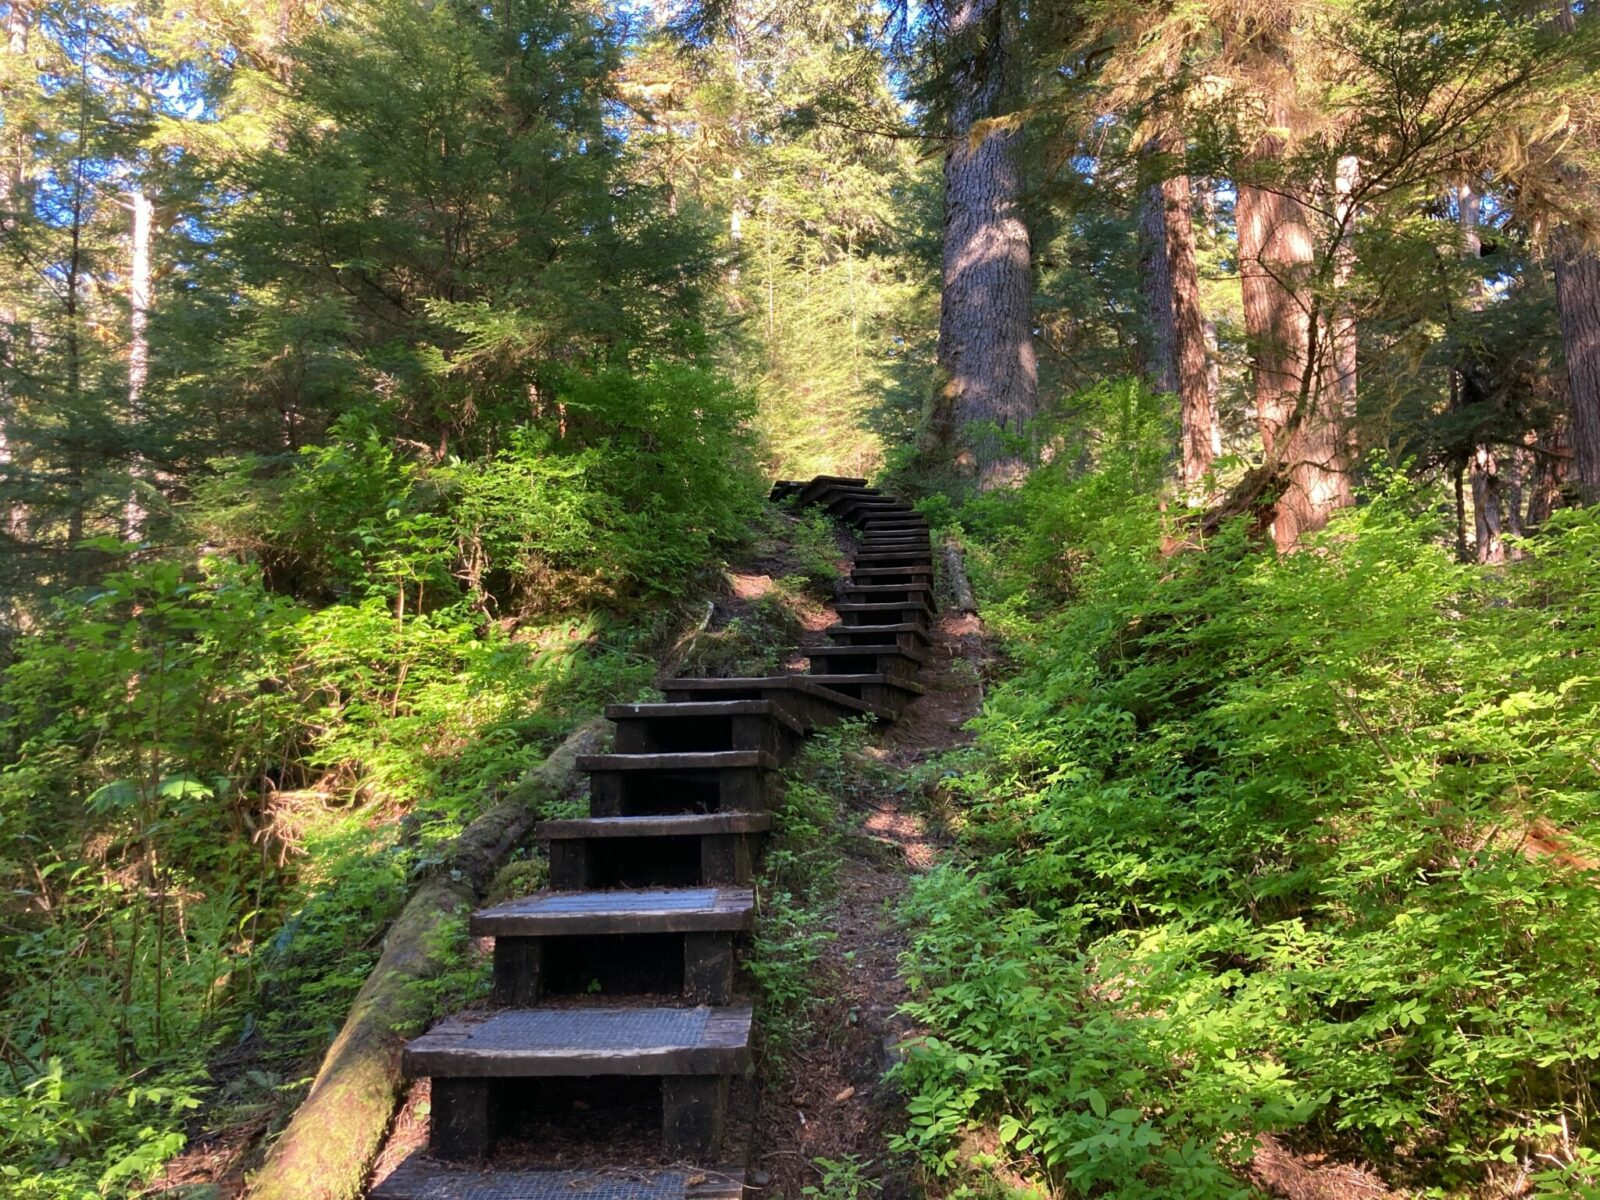 A series of wooden steps leads through the forest on a trail near Wrangell Alaska